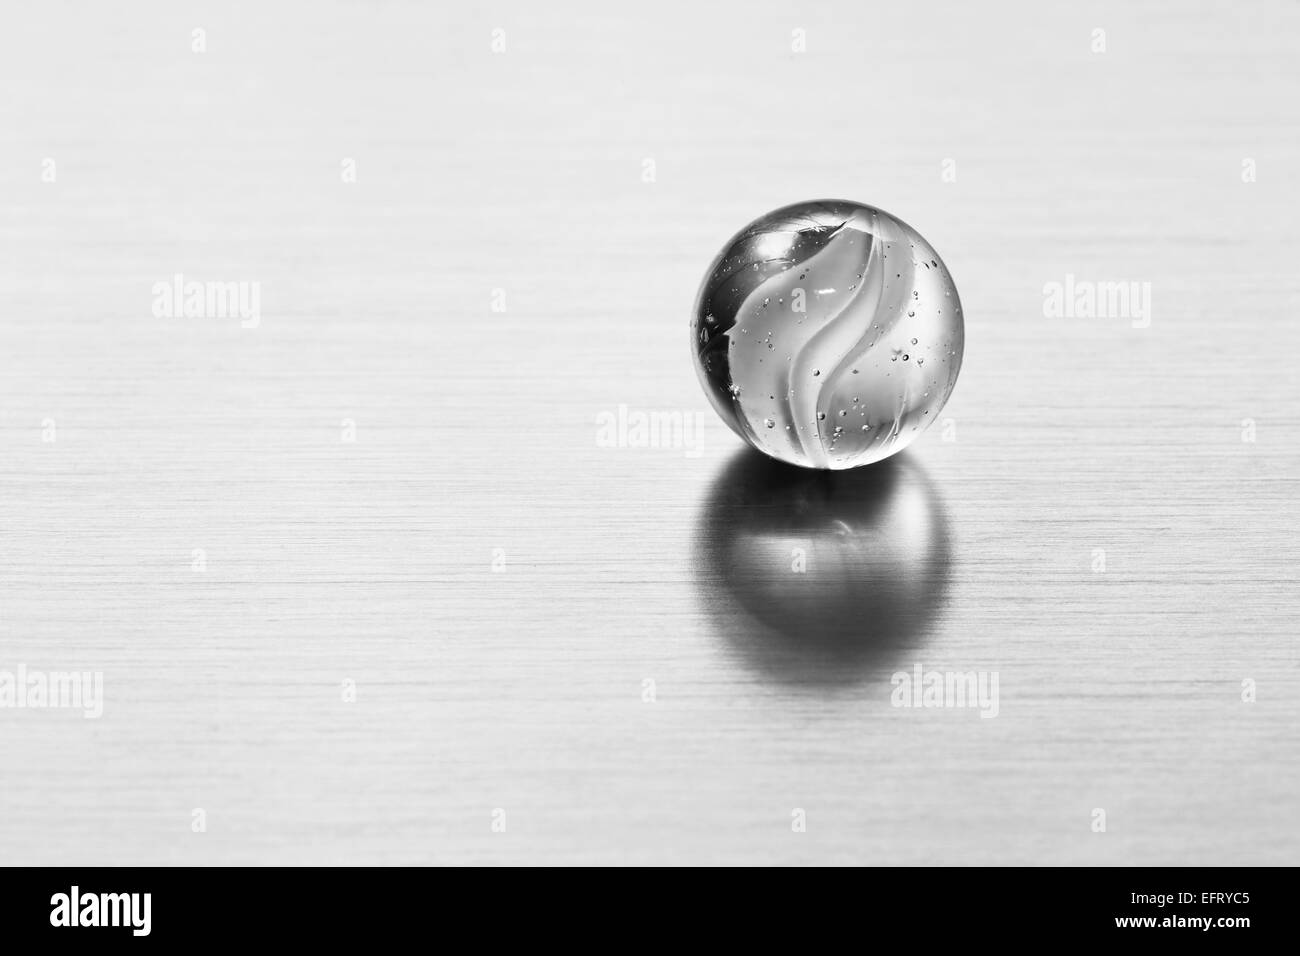 Transparent glass ball on metal surface. Conceptual modern background for sciene, technology, business etc - Stock Image